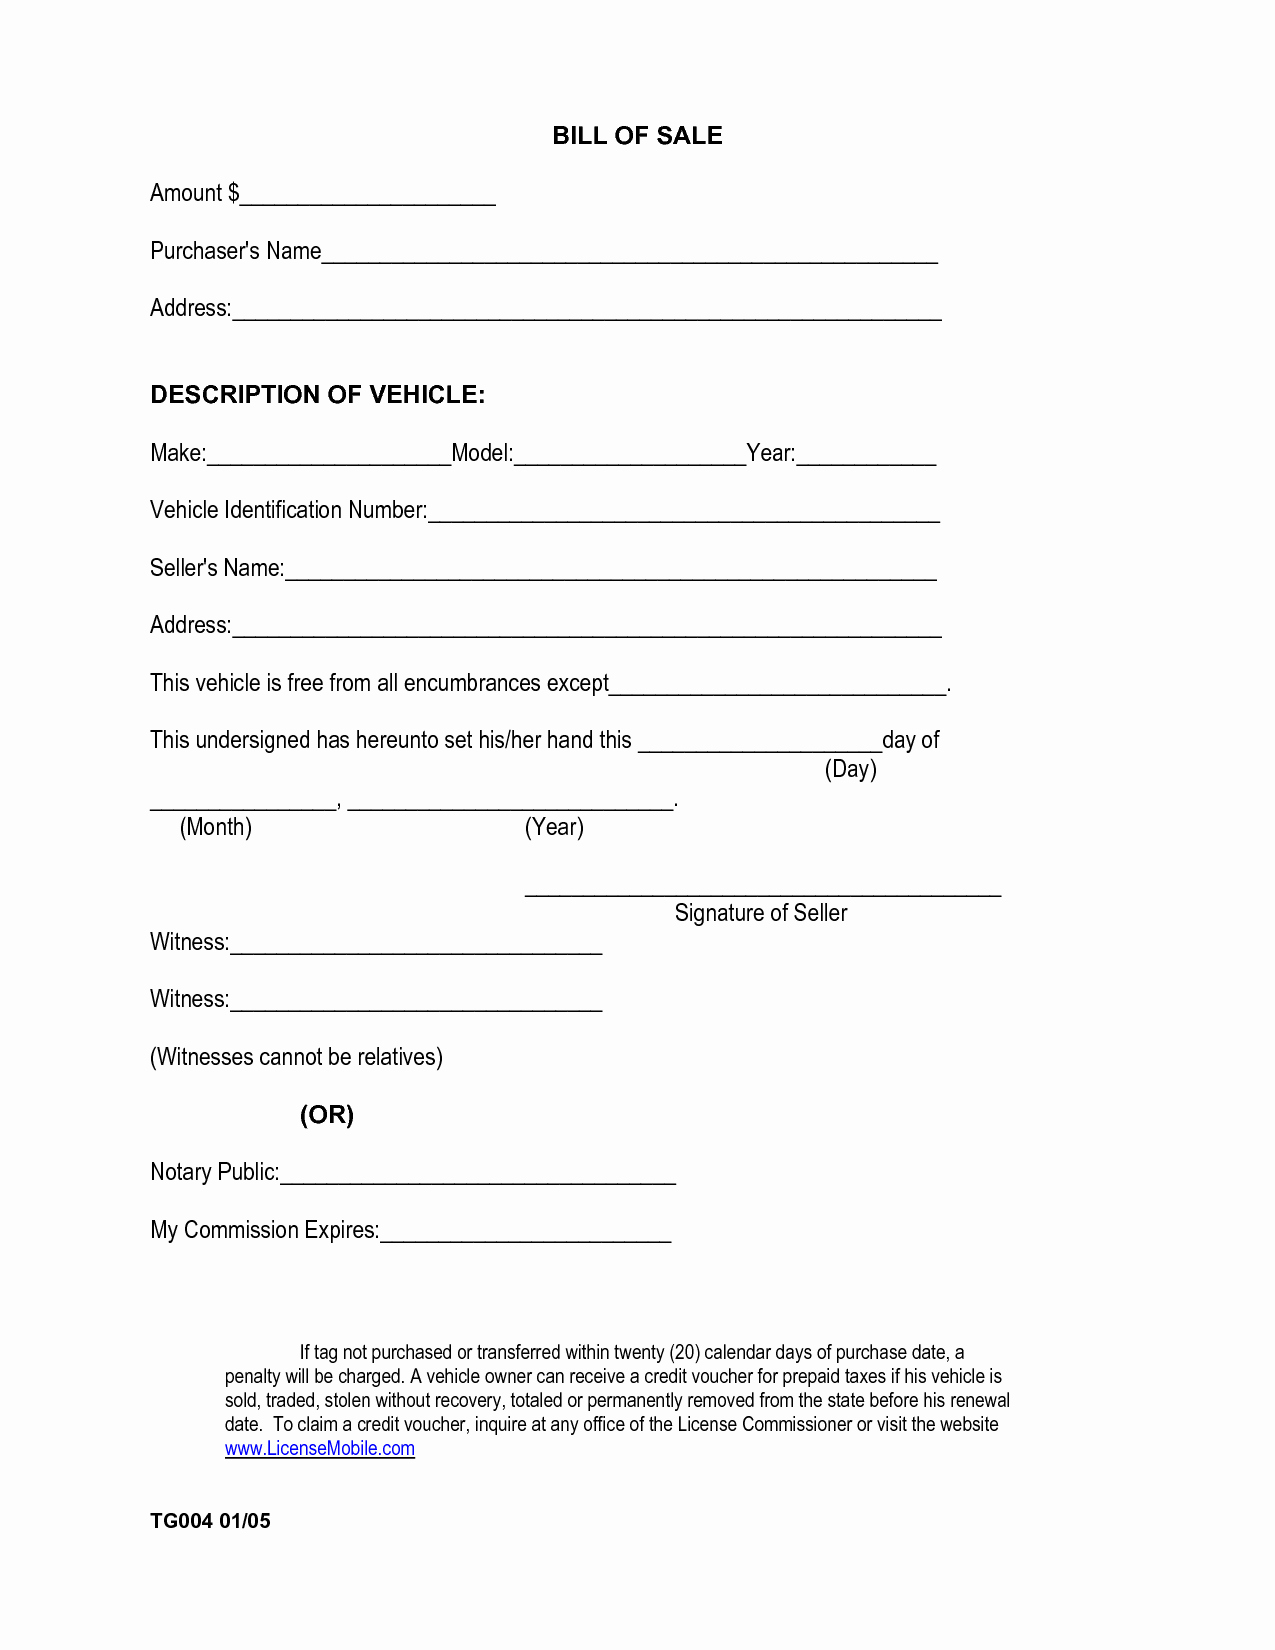 Template Bill Of Sale Car Beautiful Free Printable Car Bill Of Sale form Generic